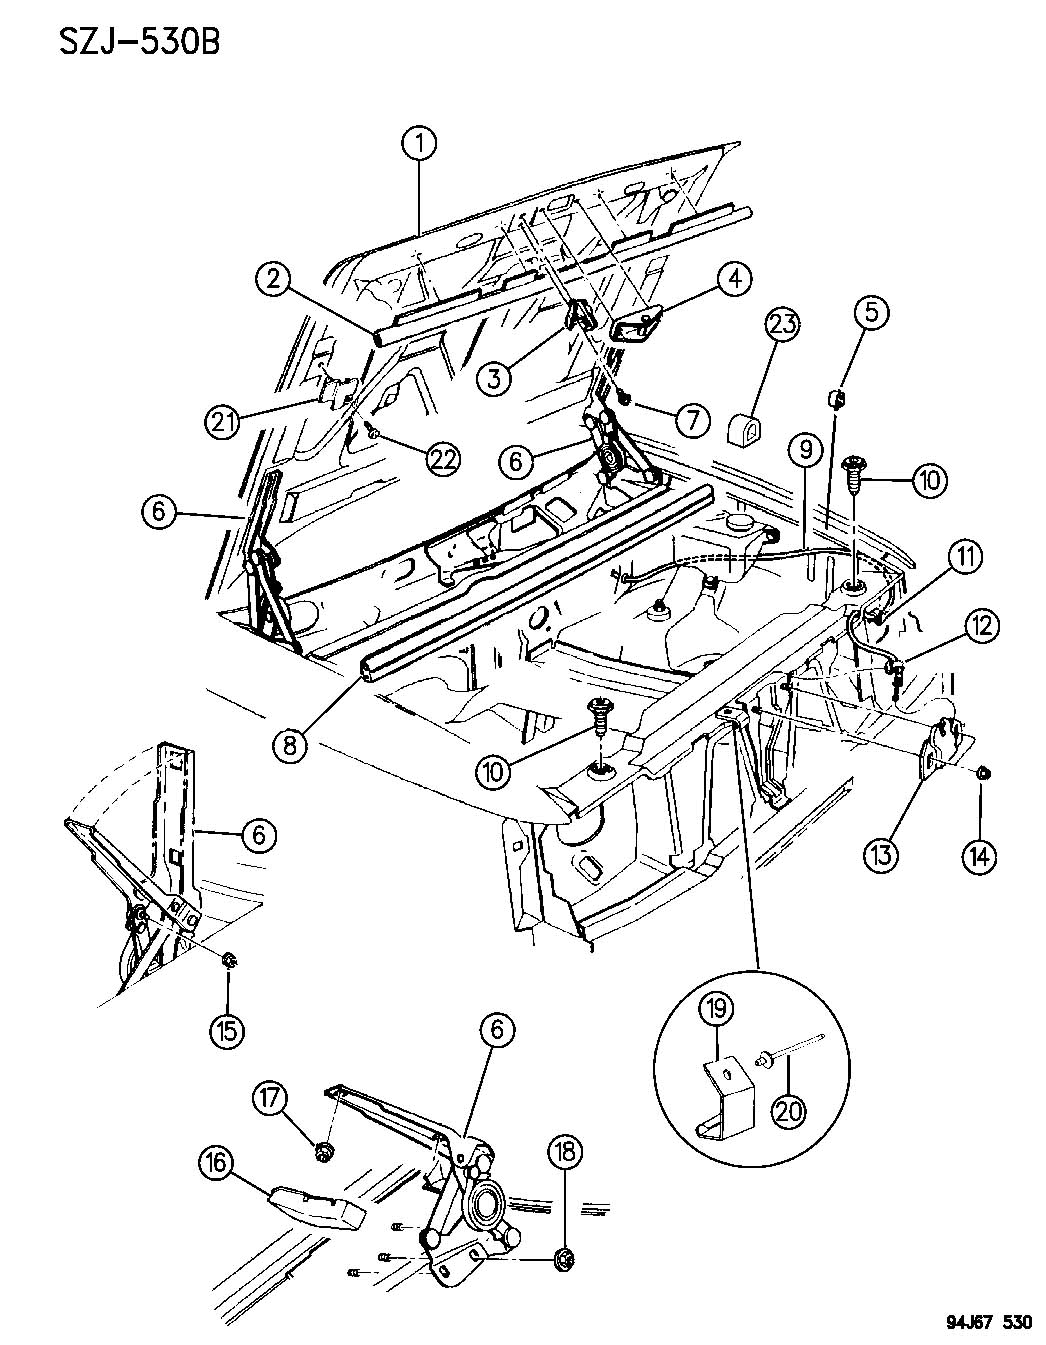 Fuse Box Diagram 2004 Jeep Wrangler Unlimited Free Engine Image Comanche Hood Latch For User Manual Download